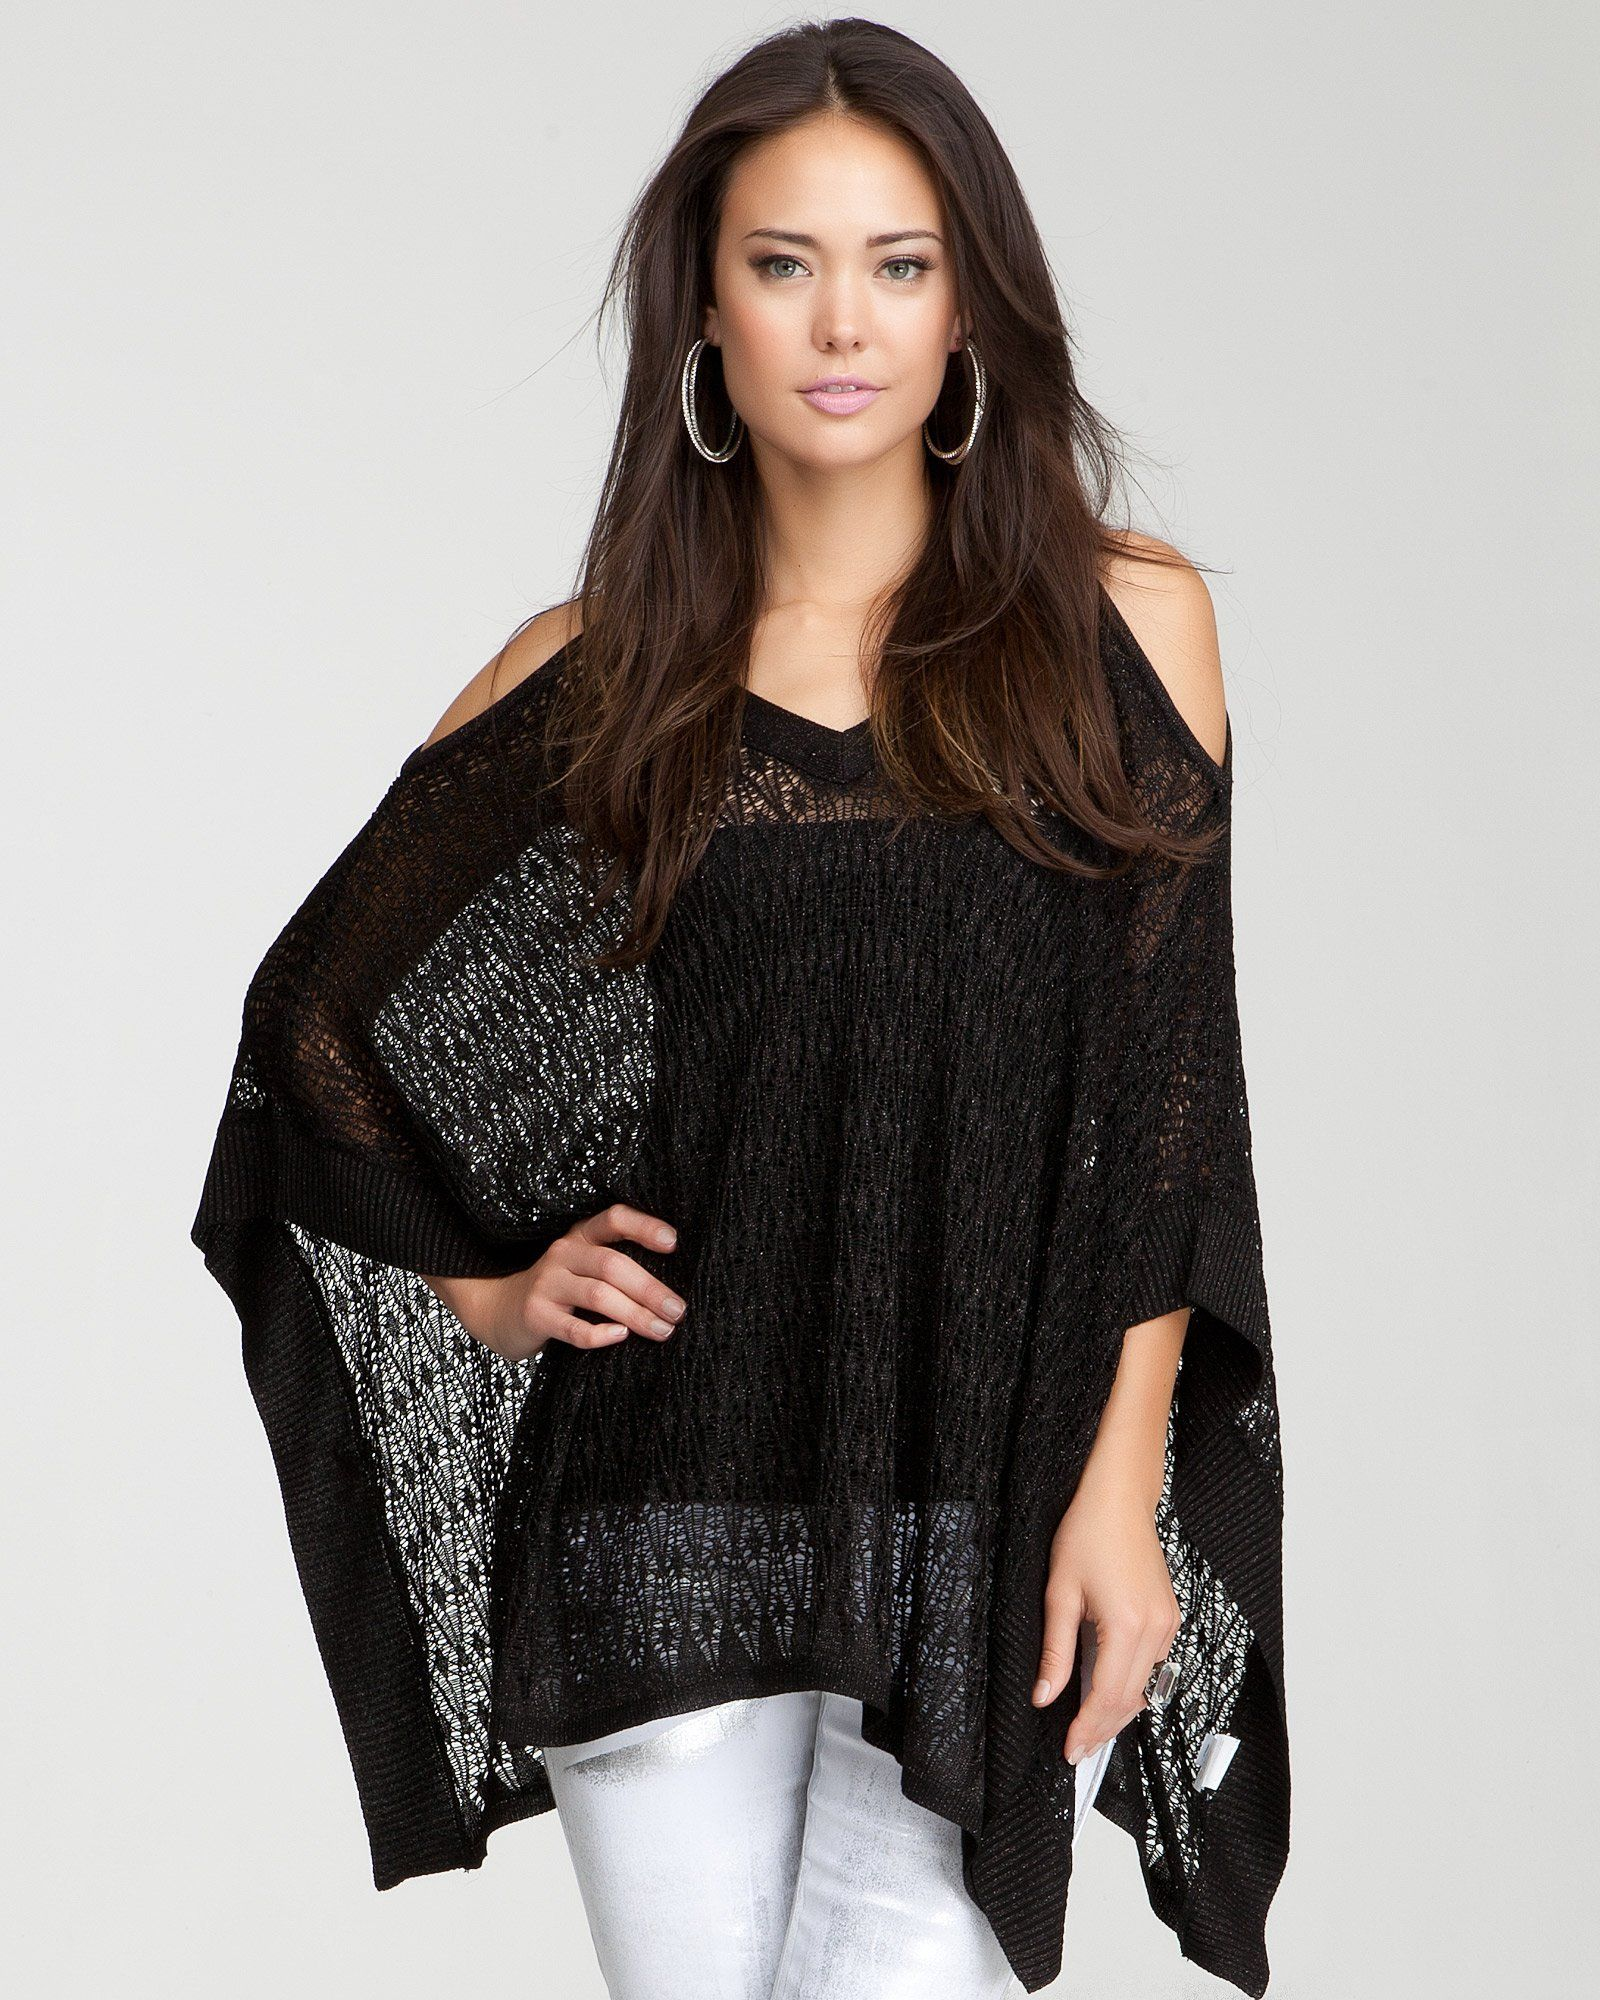 7458e9bc54c11 10. a chic jacket or cover-up  bebe Cold Shoulder Poncho   bebe   wishesanddreams